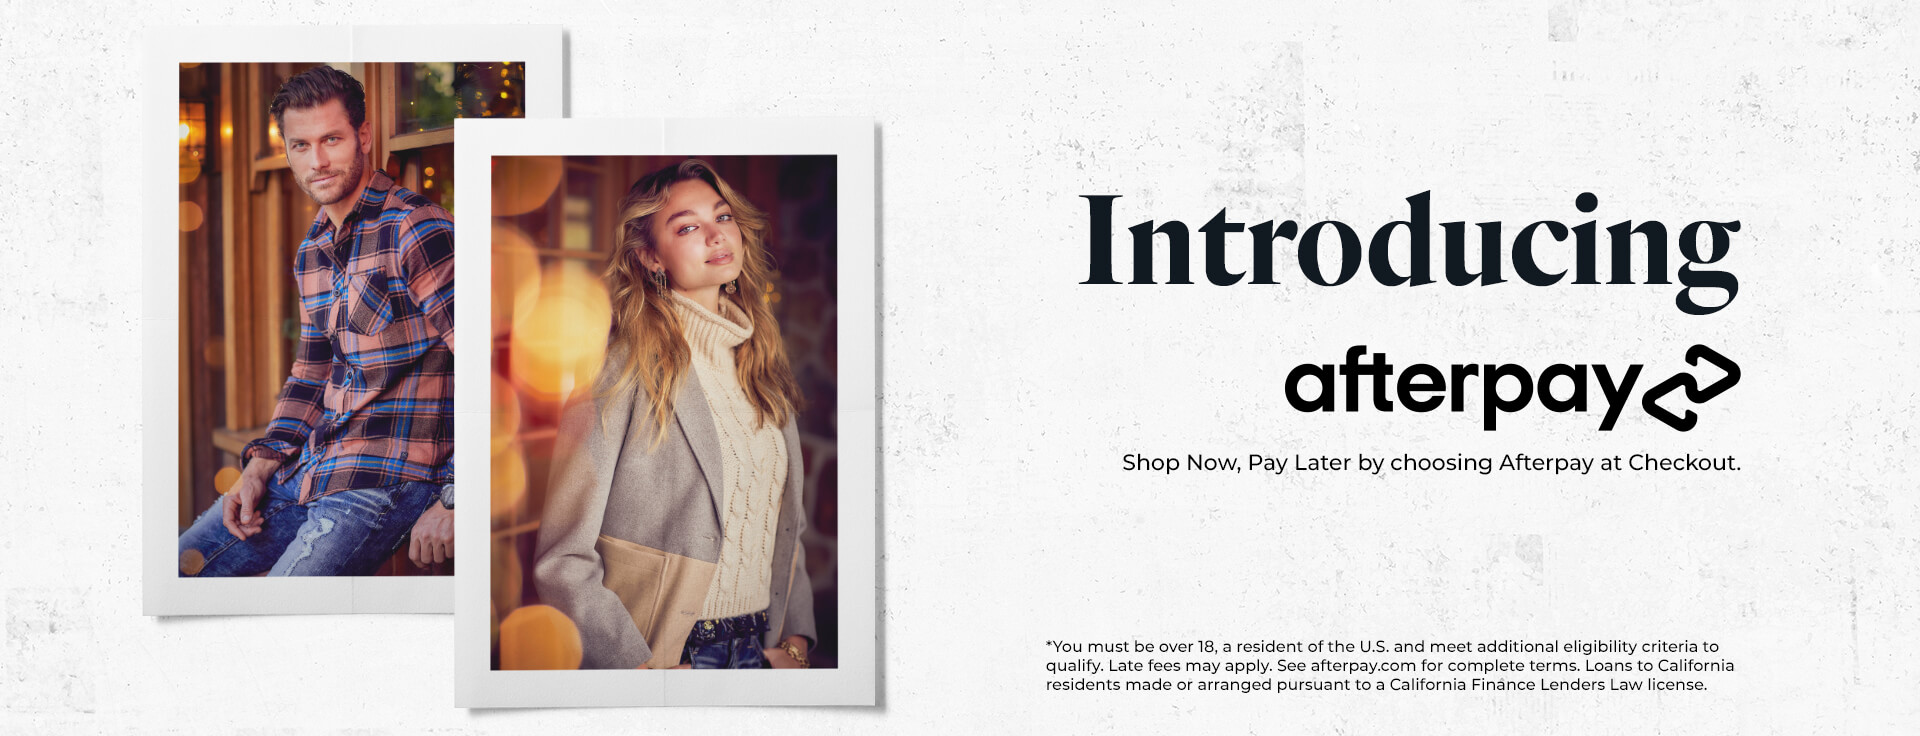 Introducing Afterpay - Shop Now, Pay Later by choosing Afterpay at Checkout Shop Now